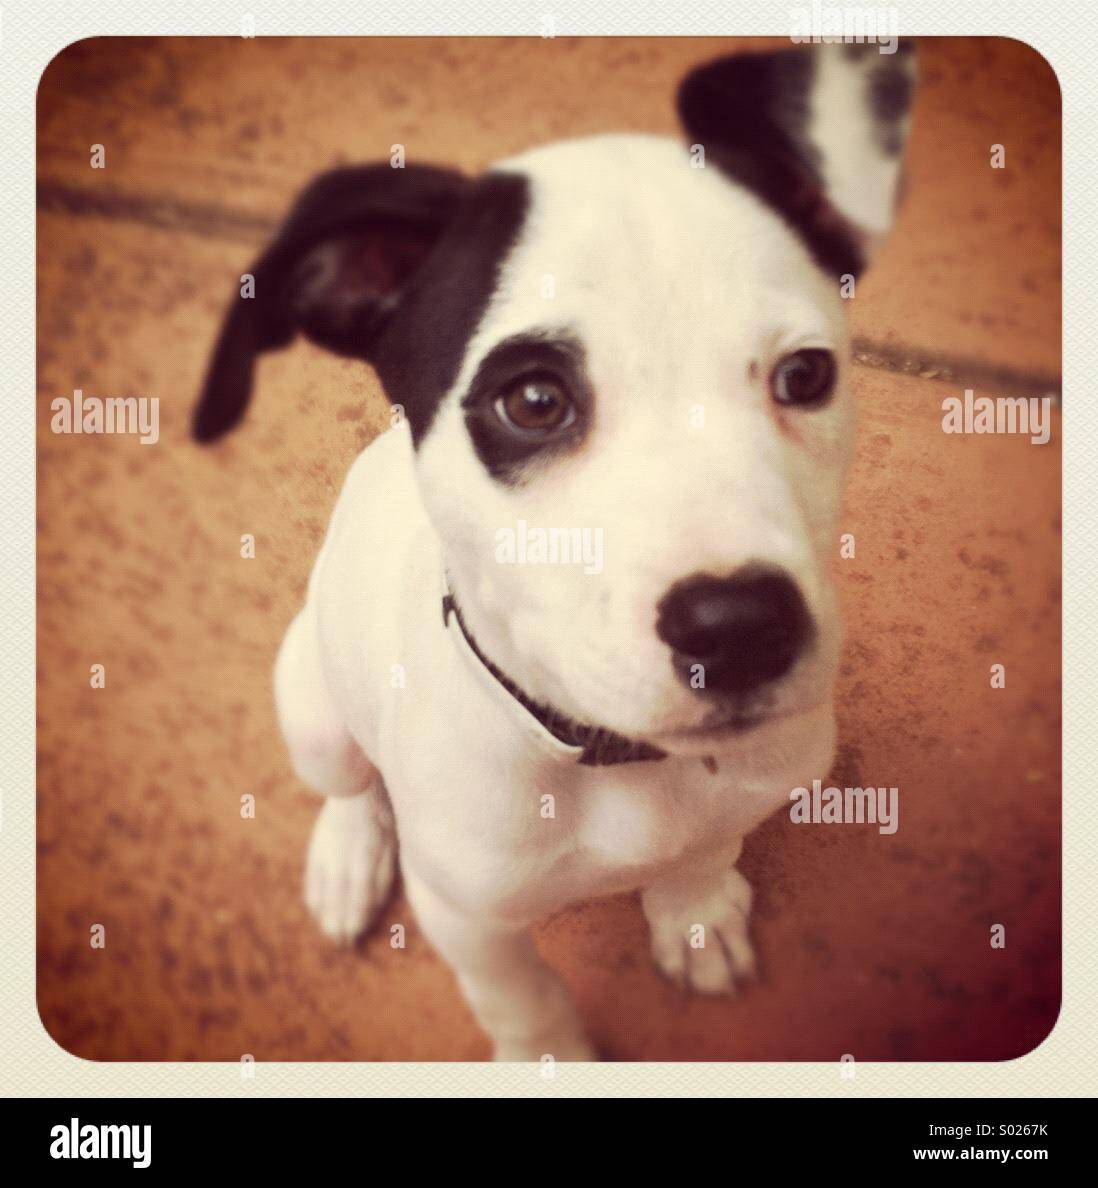 Black and White American Staffy cross puppy with black eye patch - Stock Image